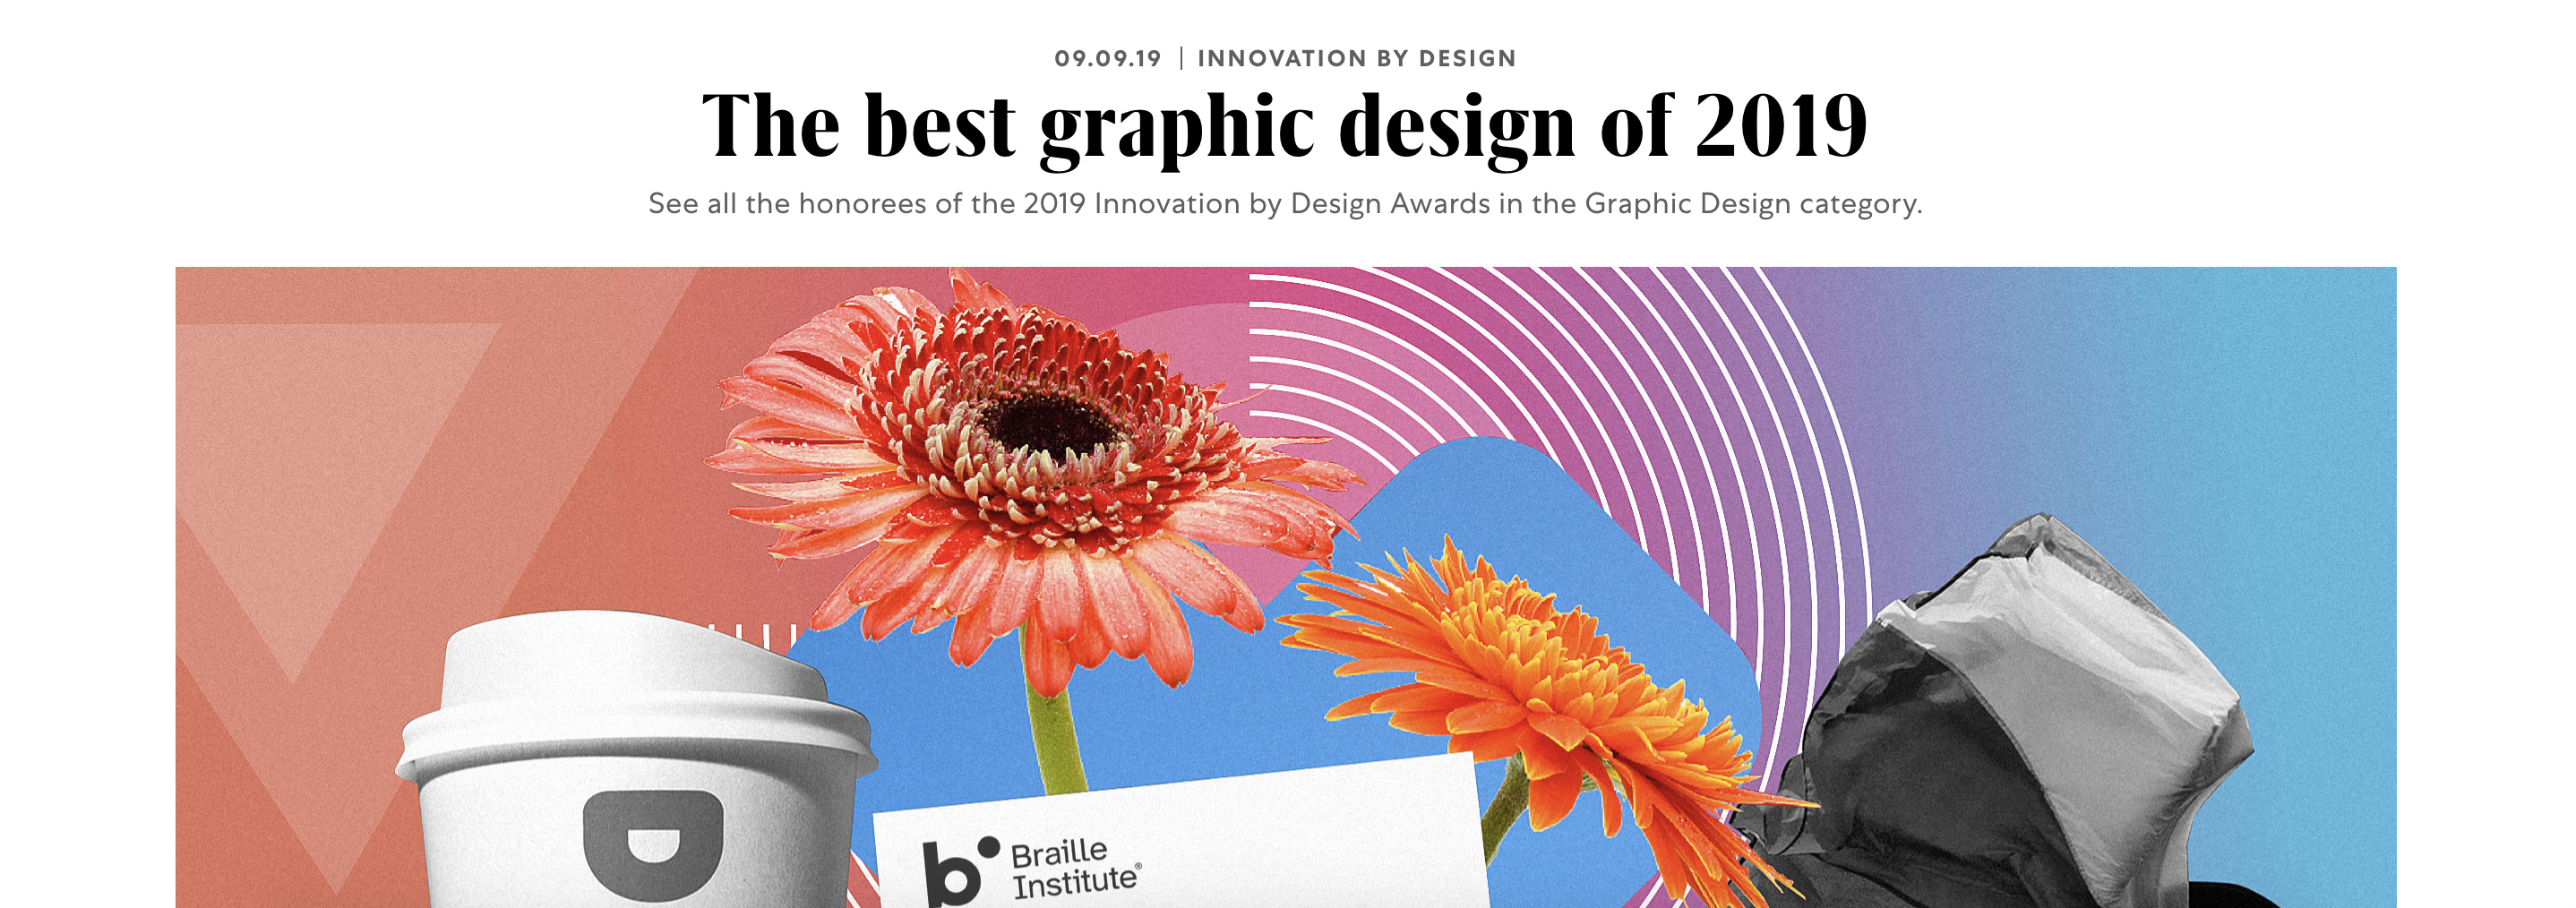 The best graphic design of 2019